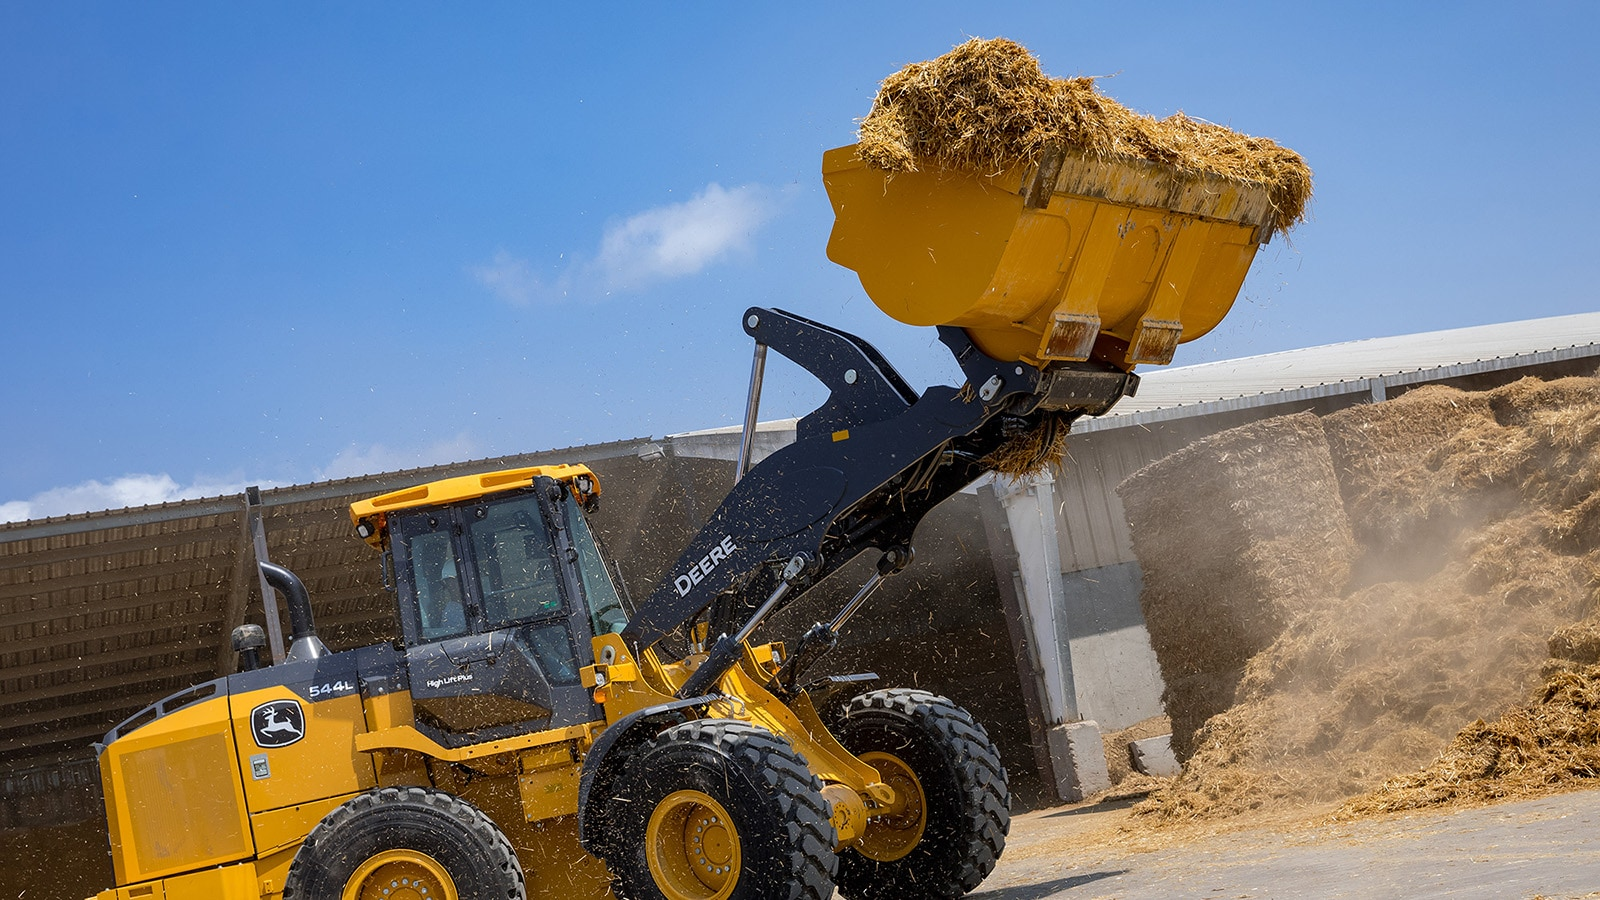 544L Wheel Loader transfers loose straw from a large pile